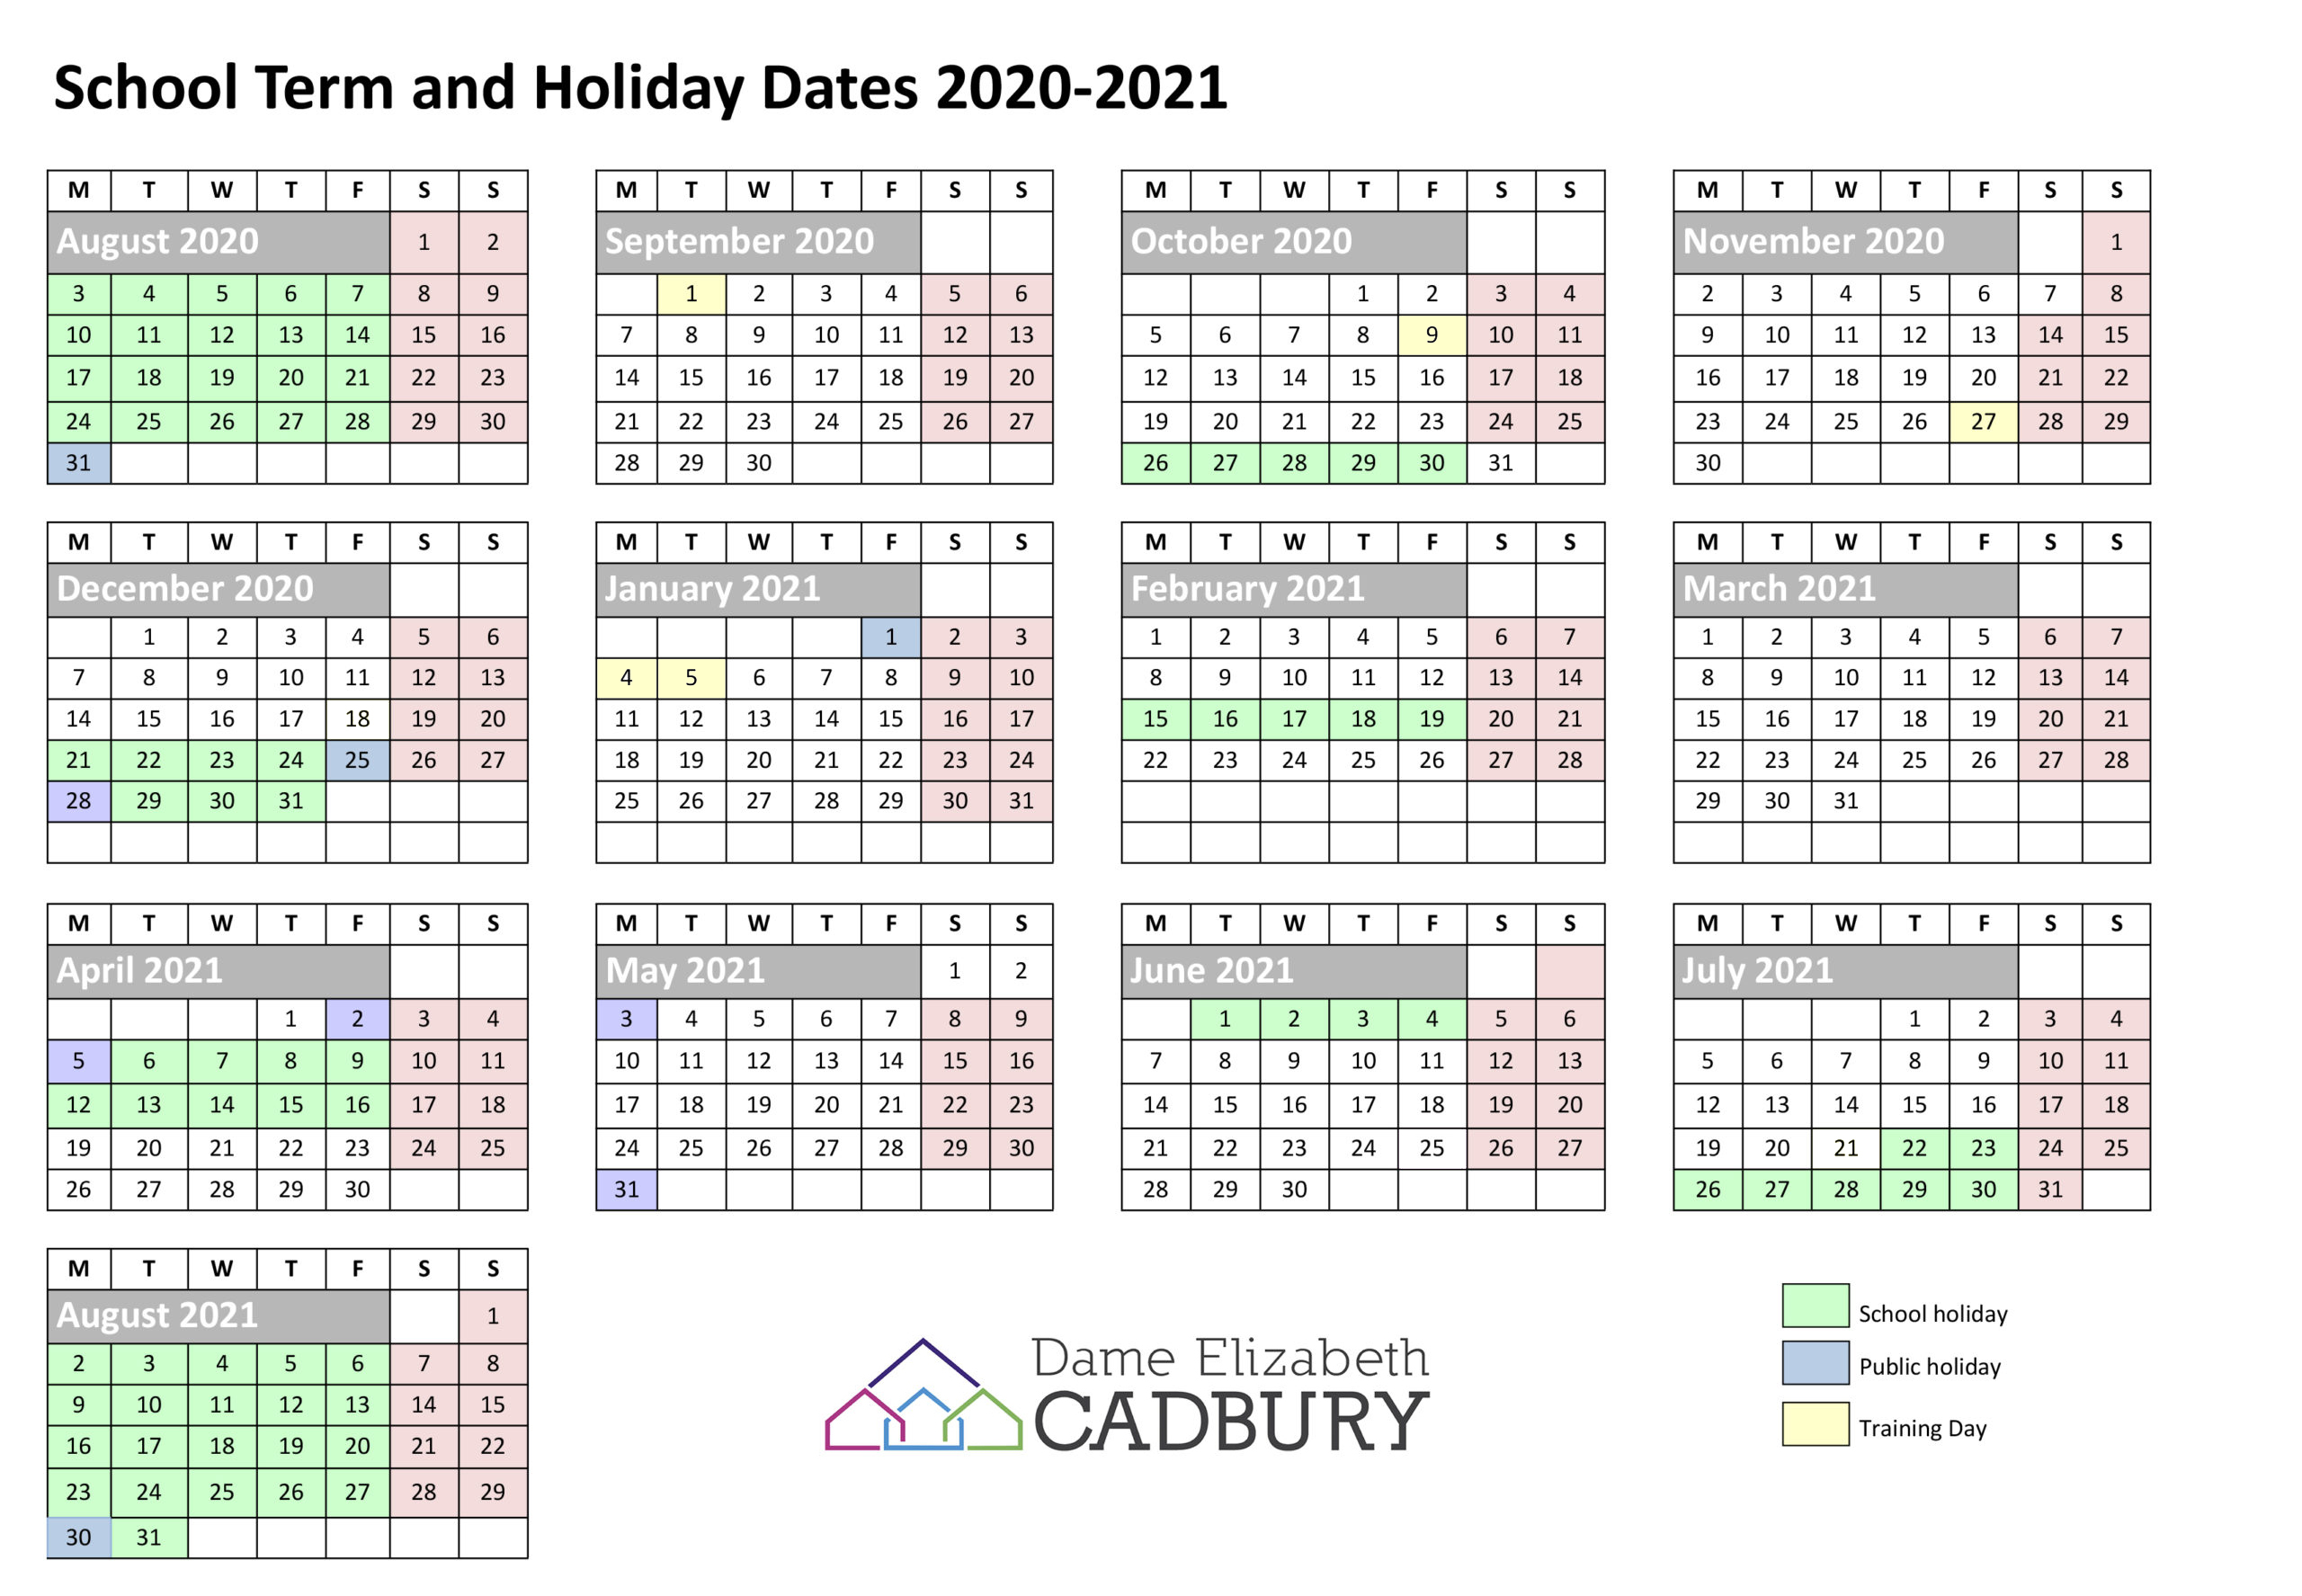 School-Term-Holiday-Dates-2020-2021